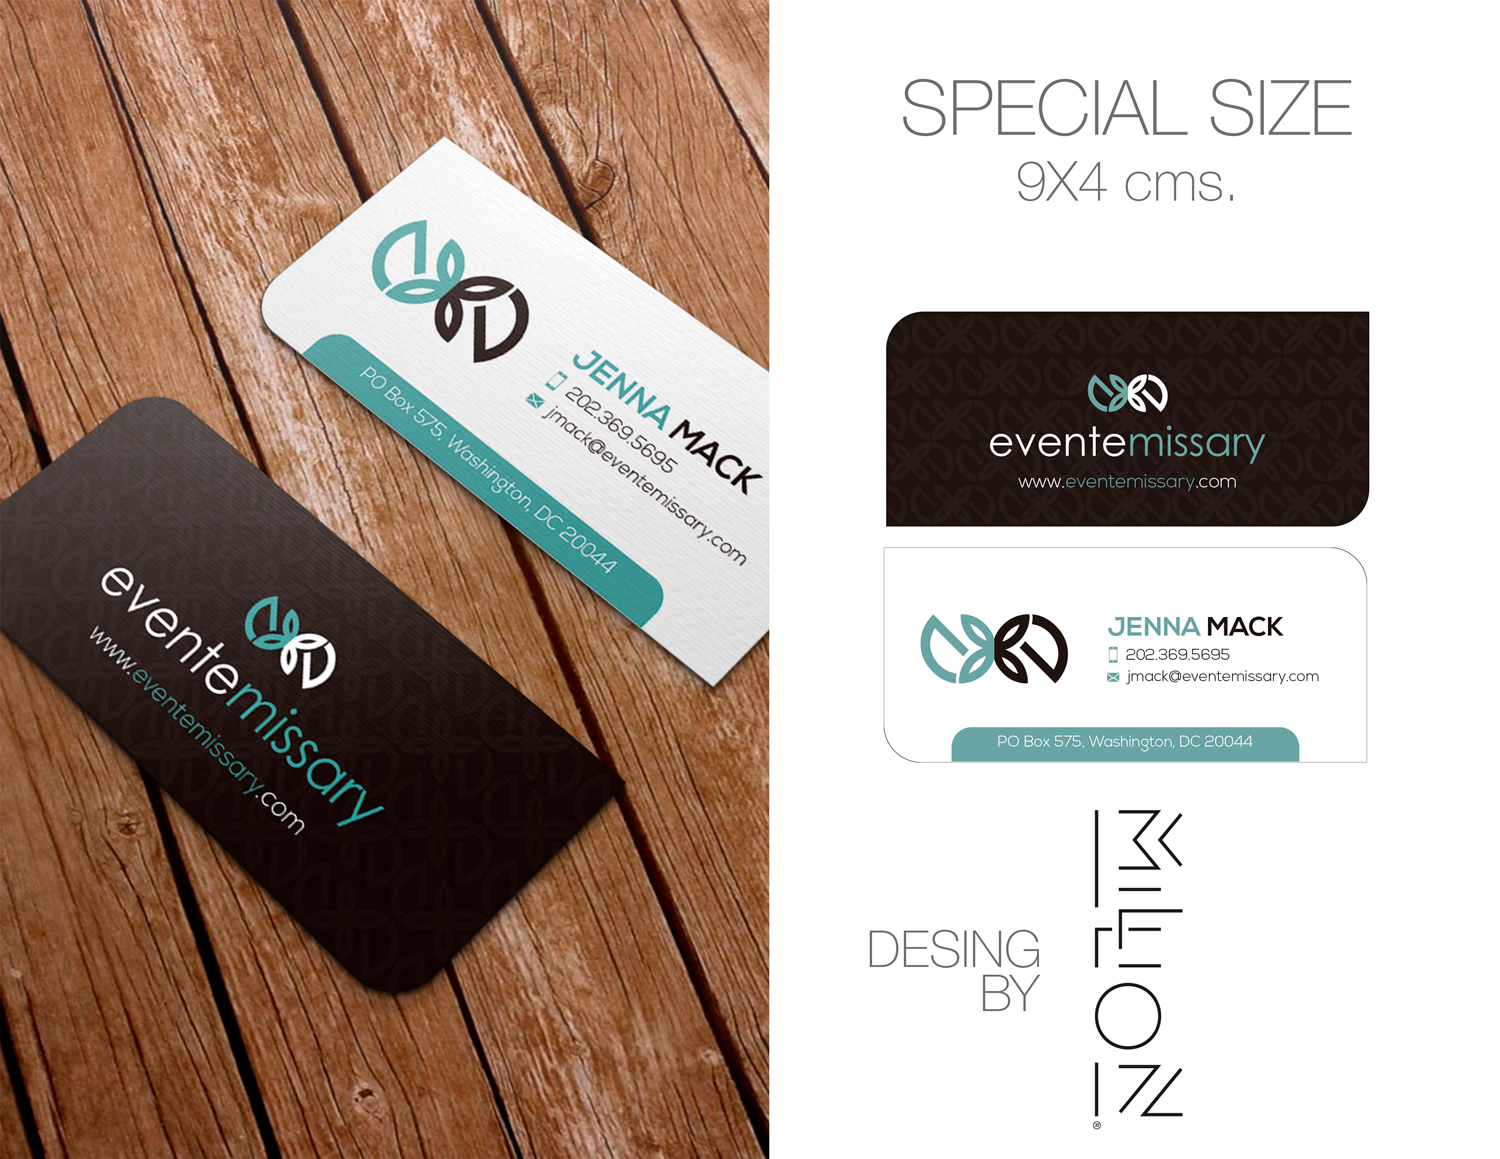 Professional upmarket event planning business card design for a business card design by million mexico for this project design 15571834 reheart Gallery